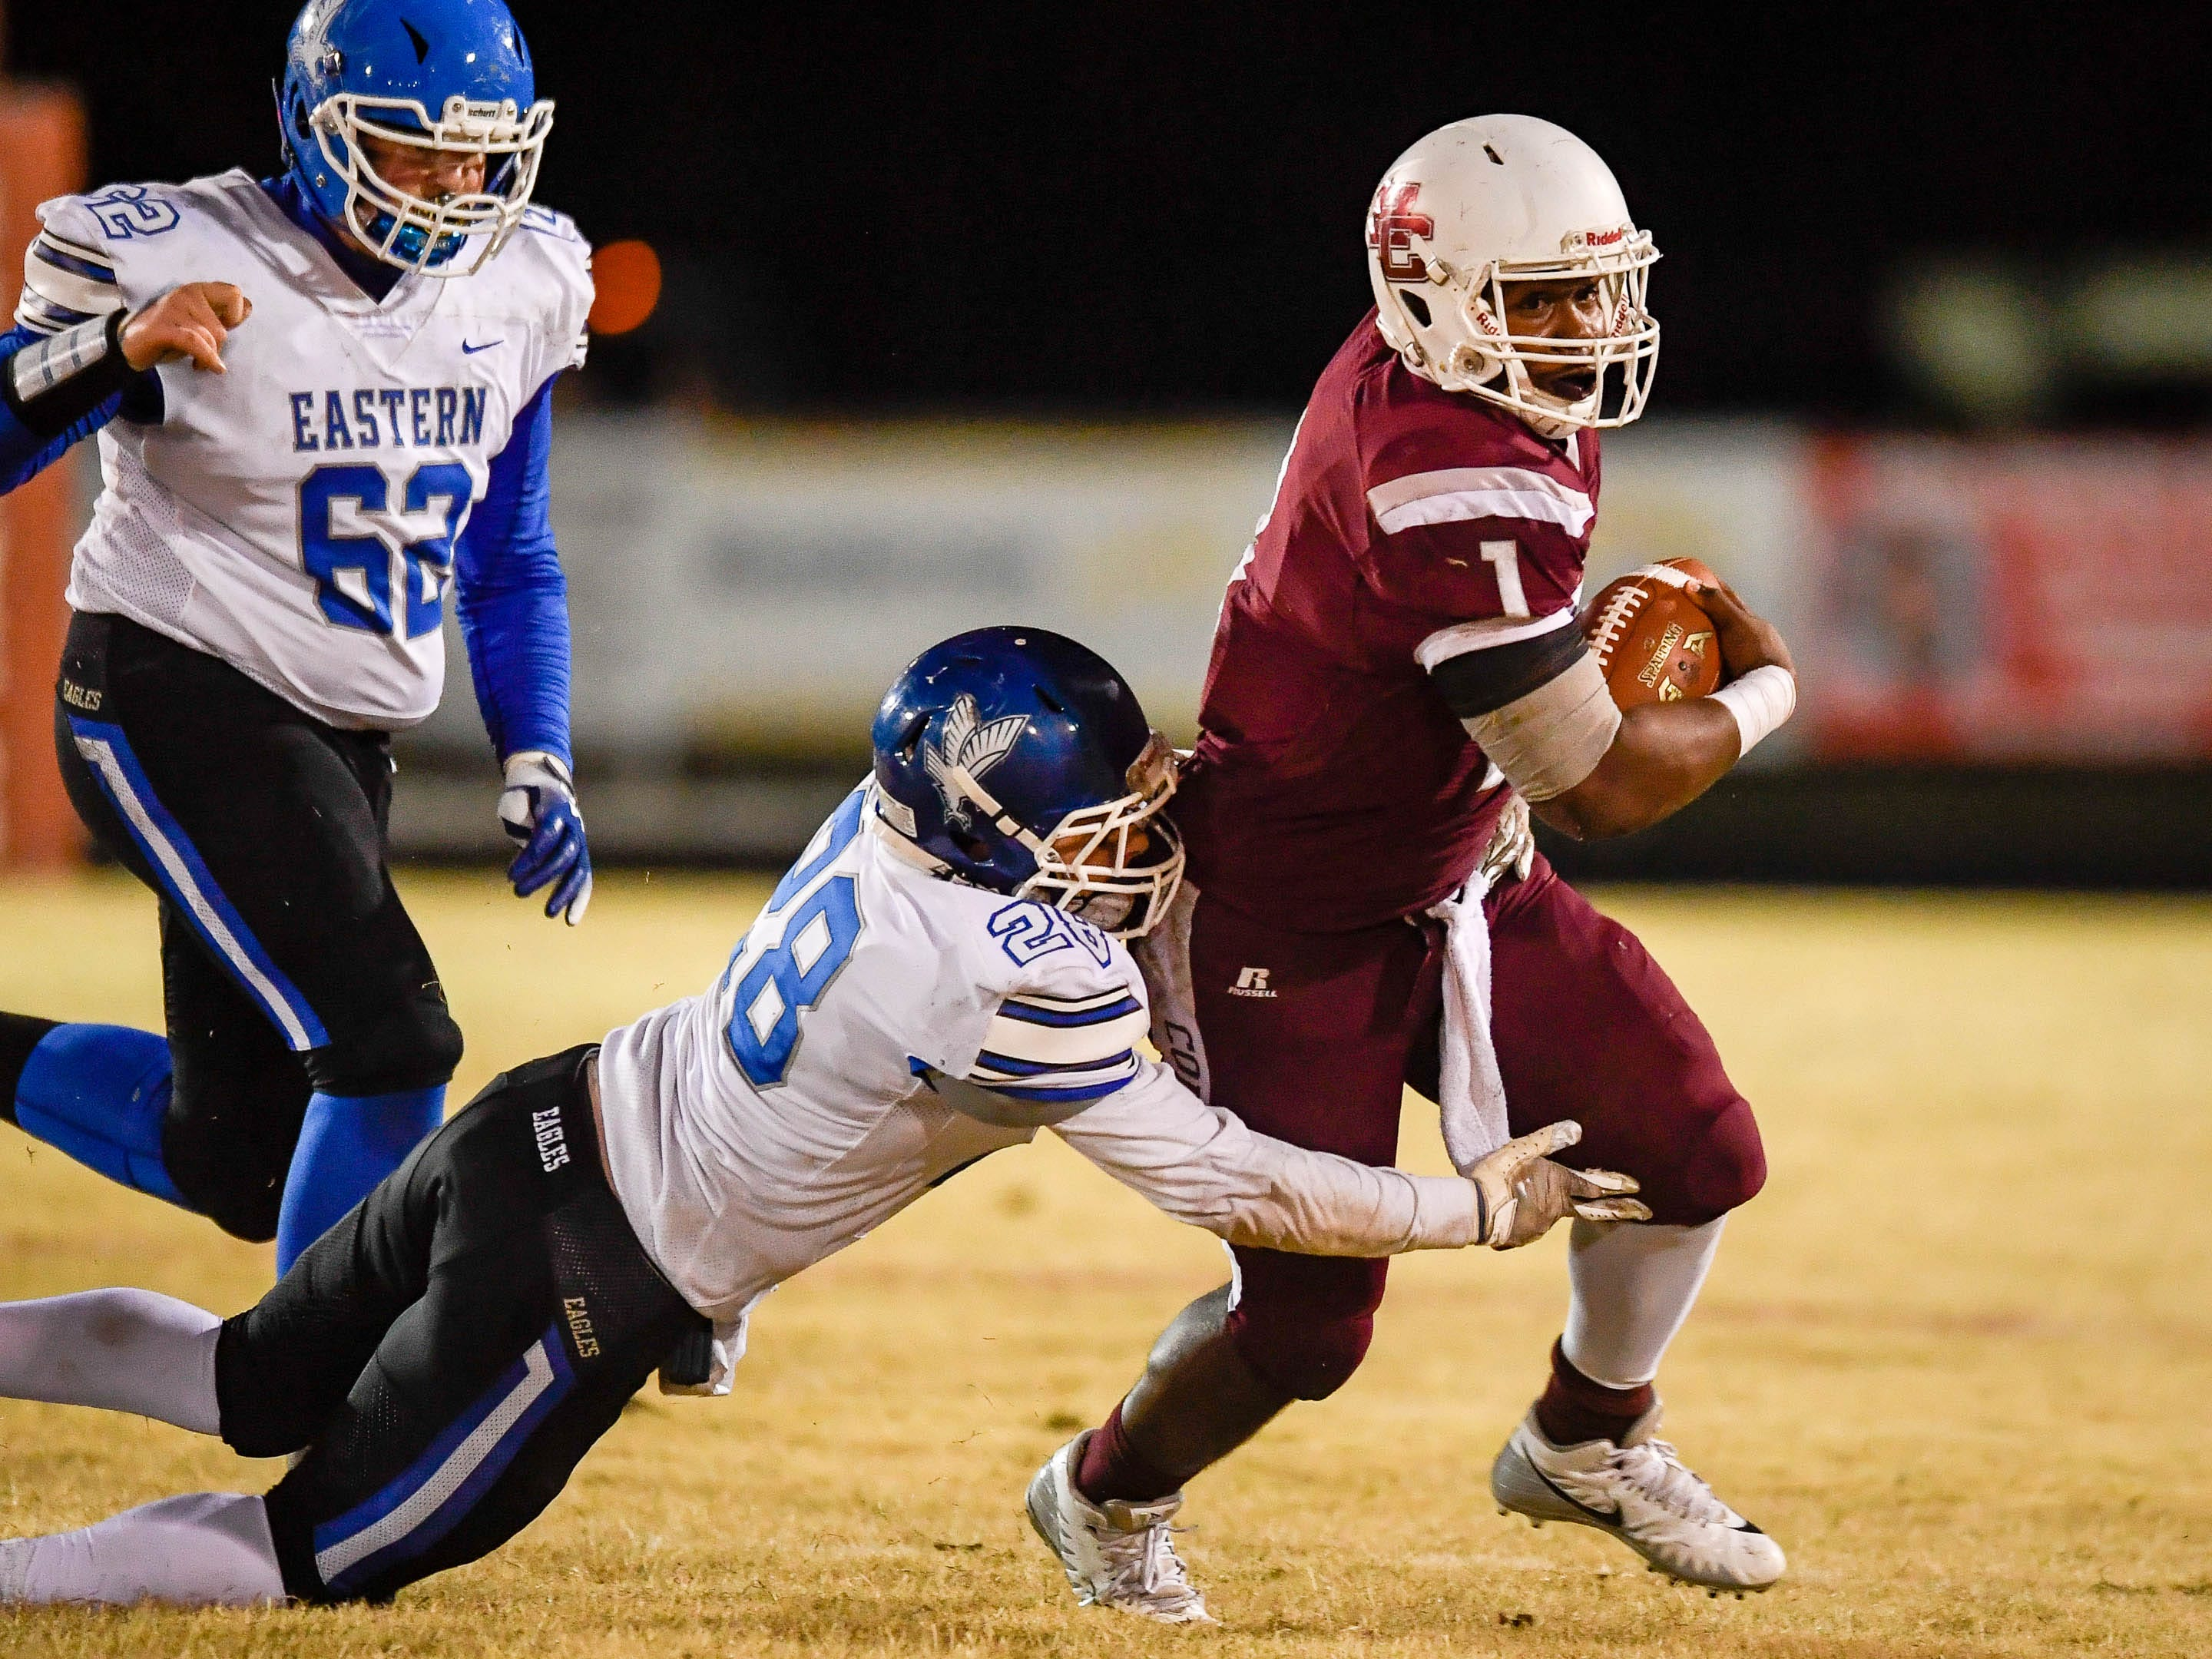 Henderson quarterback Skip Patterson (1) scrambles for extra yards as Eastern's Braden Hafling (28) tries to pull him down as the Henderson County Colonels play the Louisville Eastern Eagles in the first round of the 6-A playoffs at Colonel Field Friday, November 2, 2018.